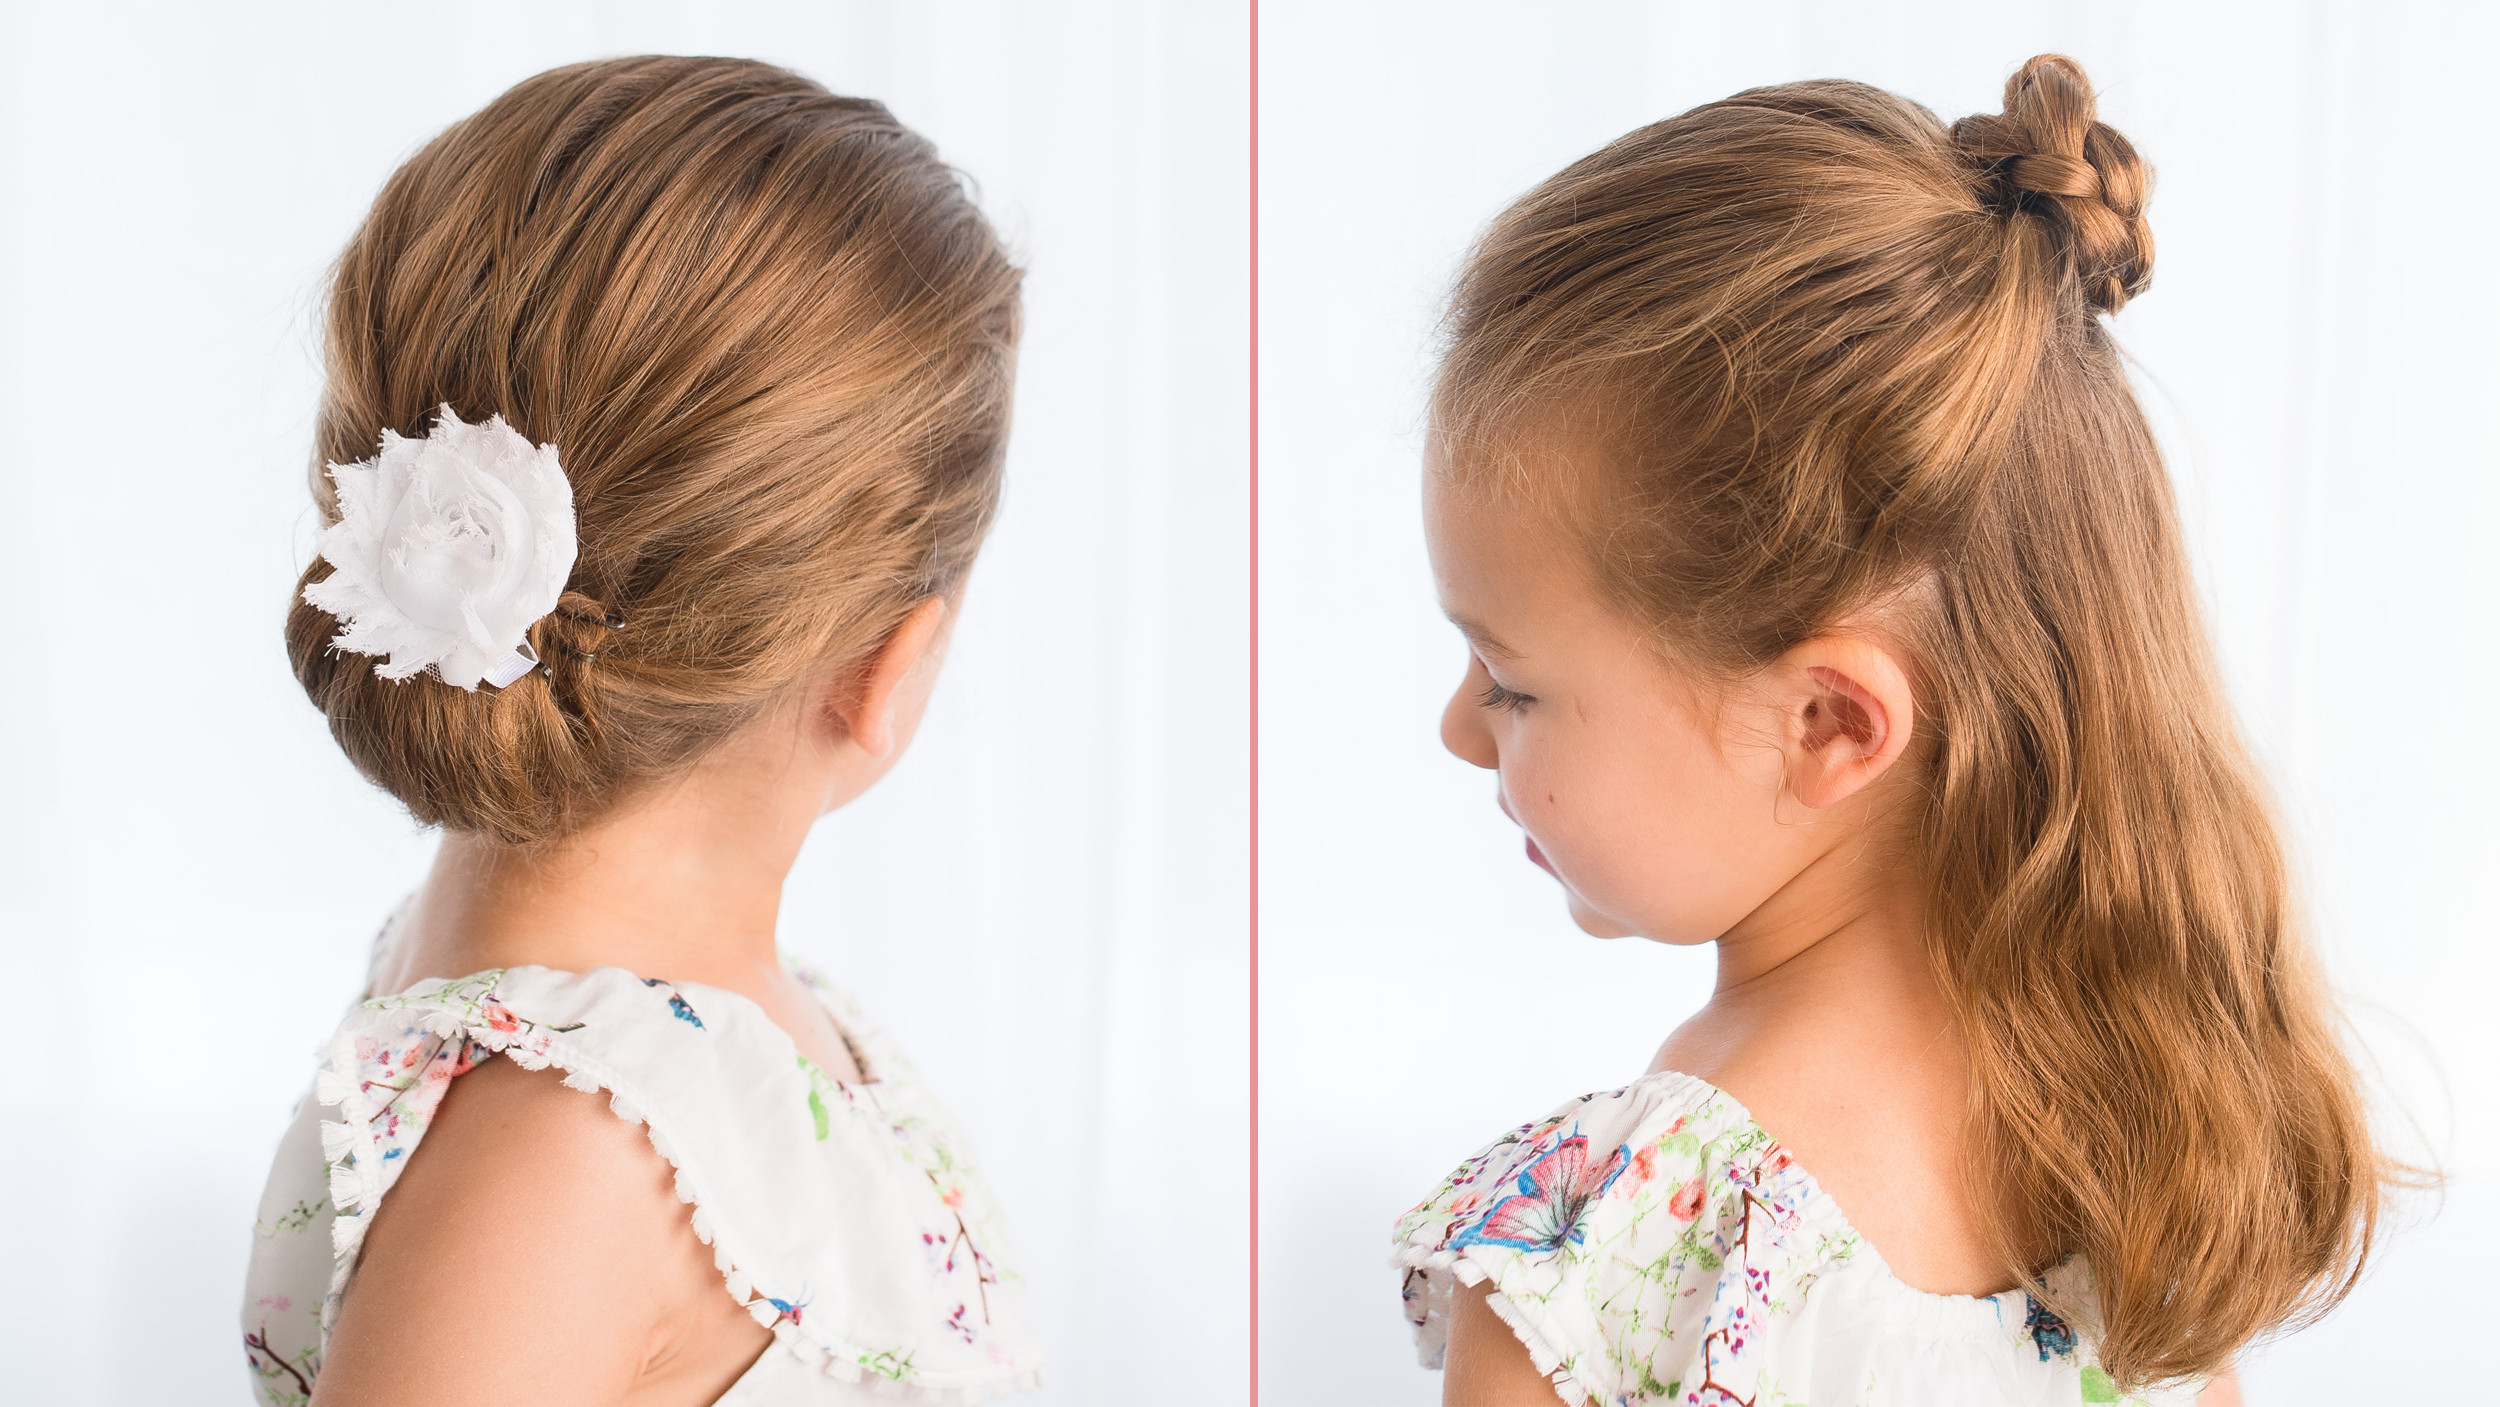 Best ideas about Kids Hairstyles For School . Save or Pin Easy hairstyles for girls that you can create in minutes Now.